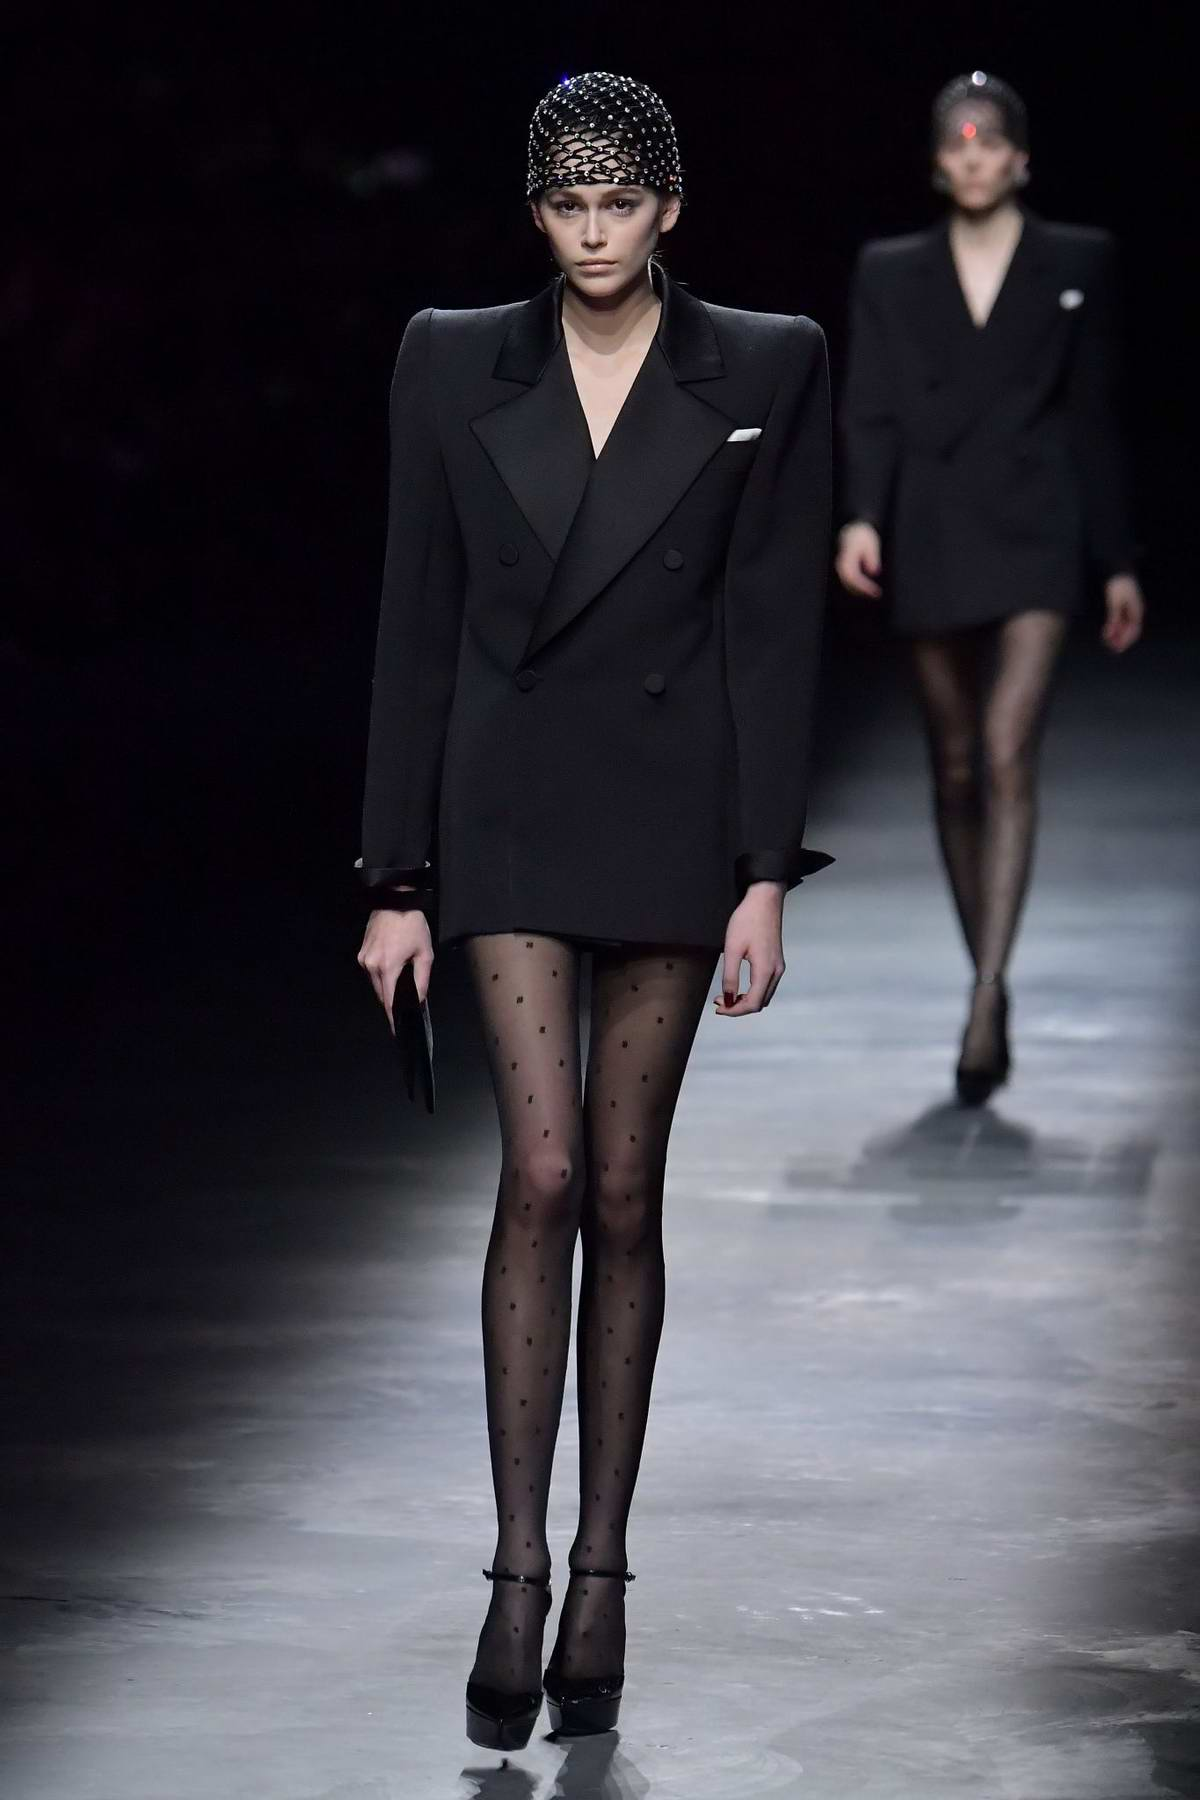 2019 paris fashion week Explore The Top Designers And Their Trends At 2019 Paris Fashion Week kaia gerber walks the runway at the saint laurent show during paris fashion week womenswear fall winter 2019 2020 in paris france 260219 5